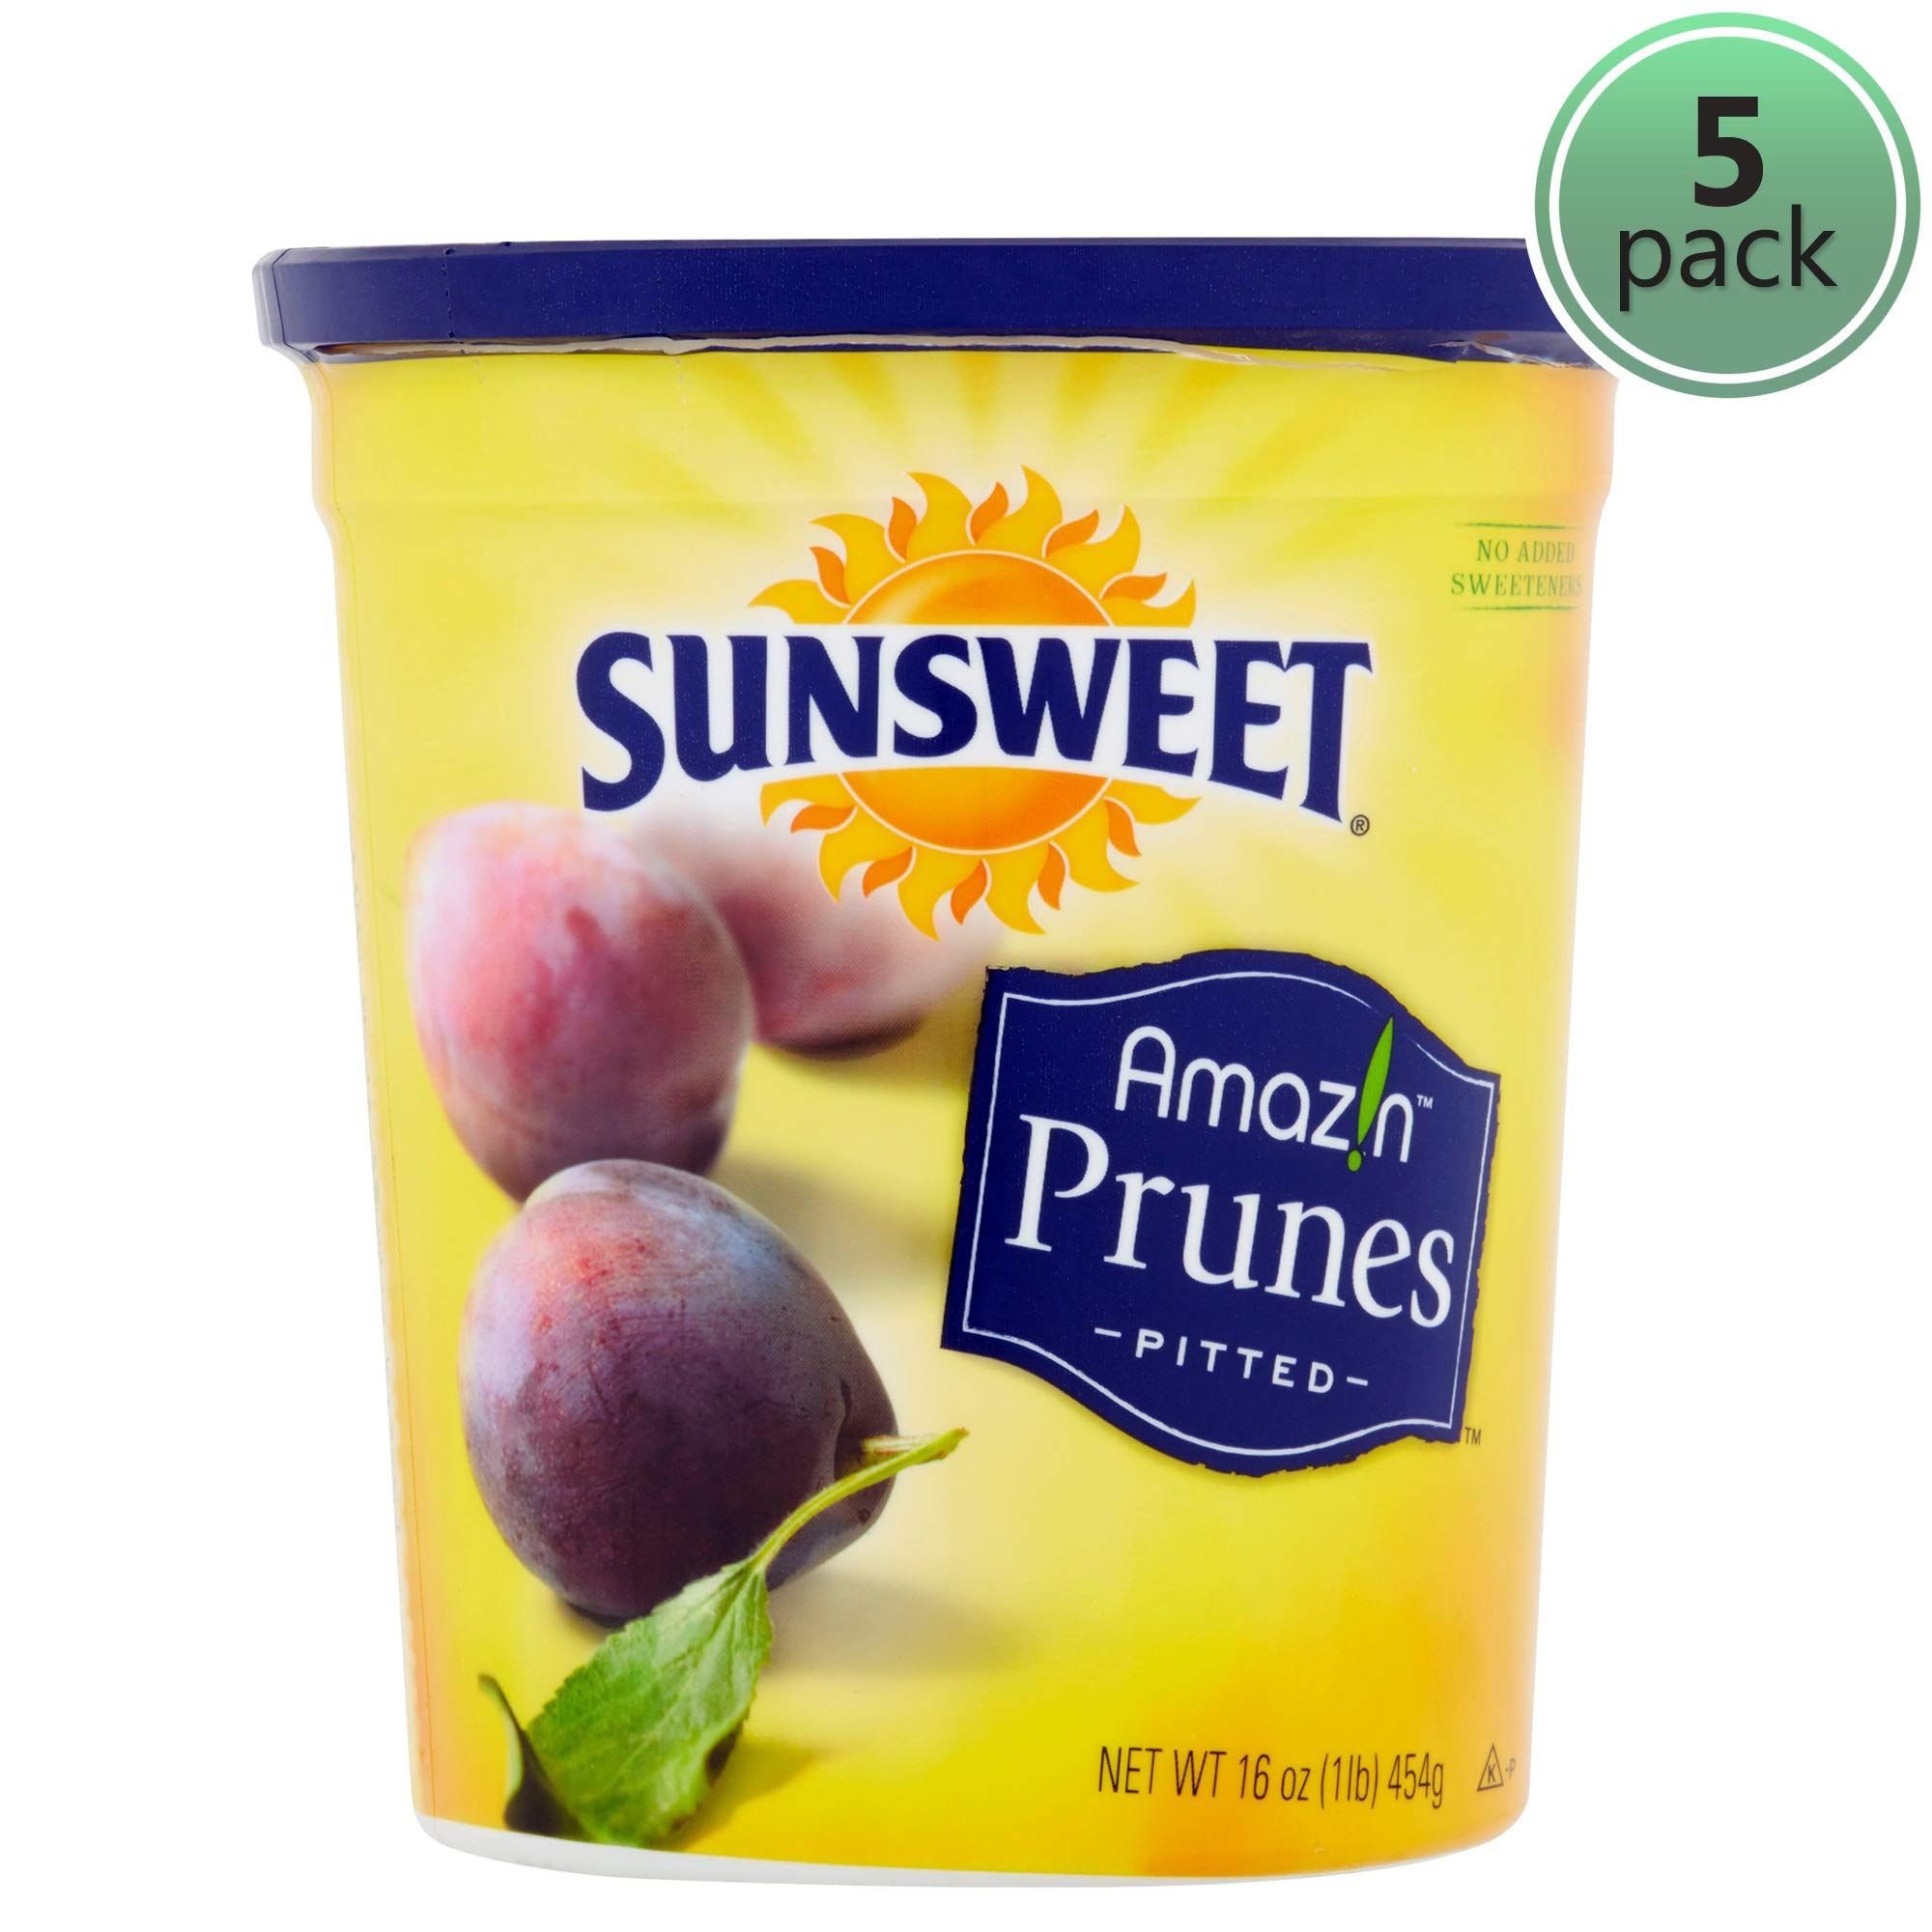 SUNSWEET Amazin Pitted Prunes, 16 oz - Pack of 5 by Sunsweet